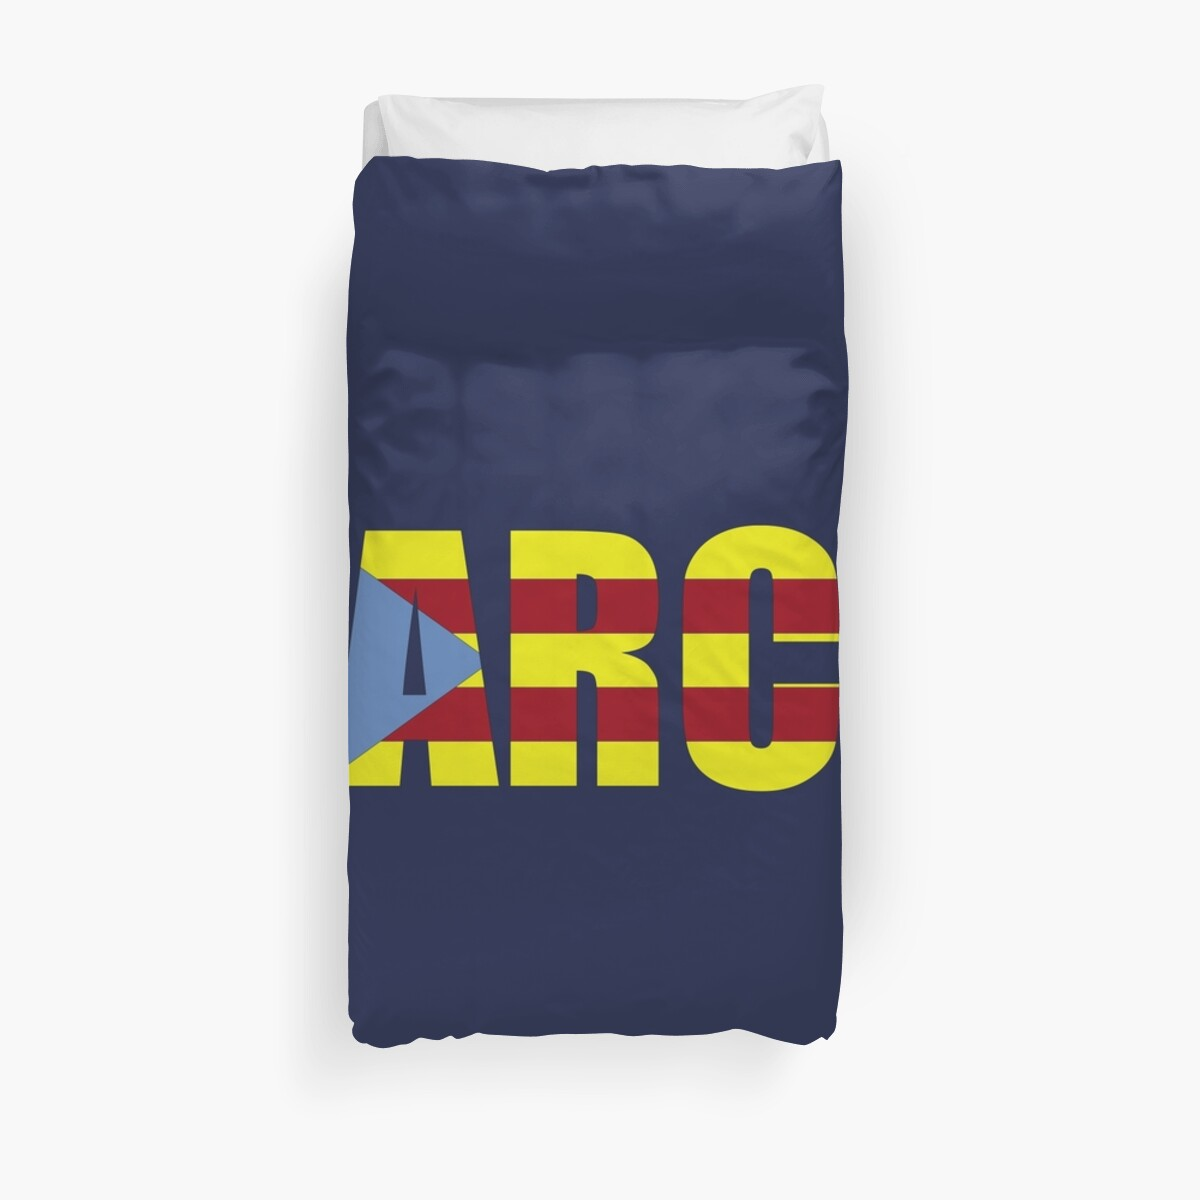 3e58f654fb8 Barca FC Barcelona Flag of Catalonia Football T-Shirts and Gifts by  Sago-Design